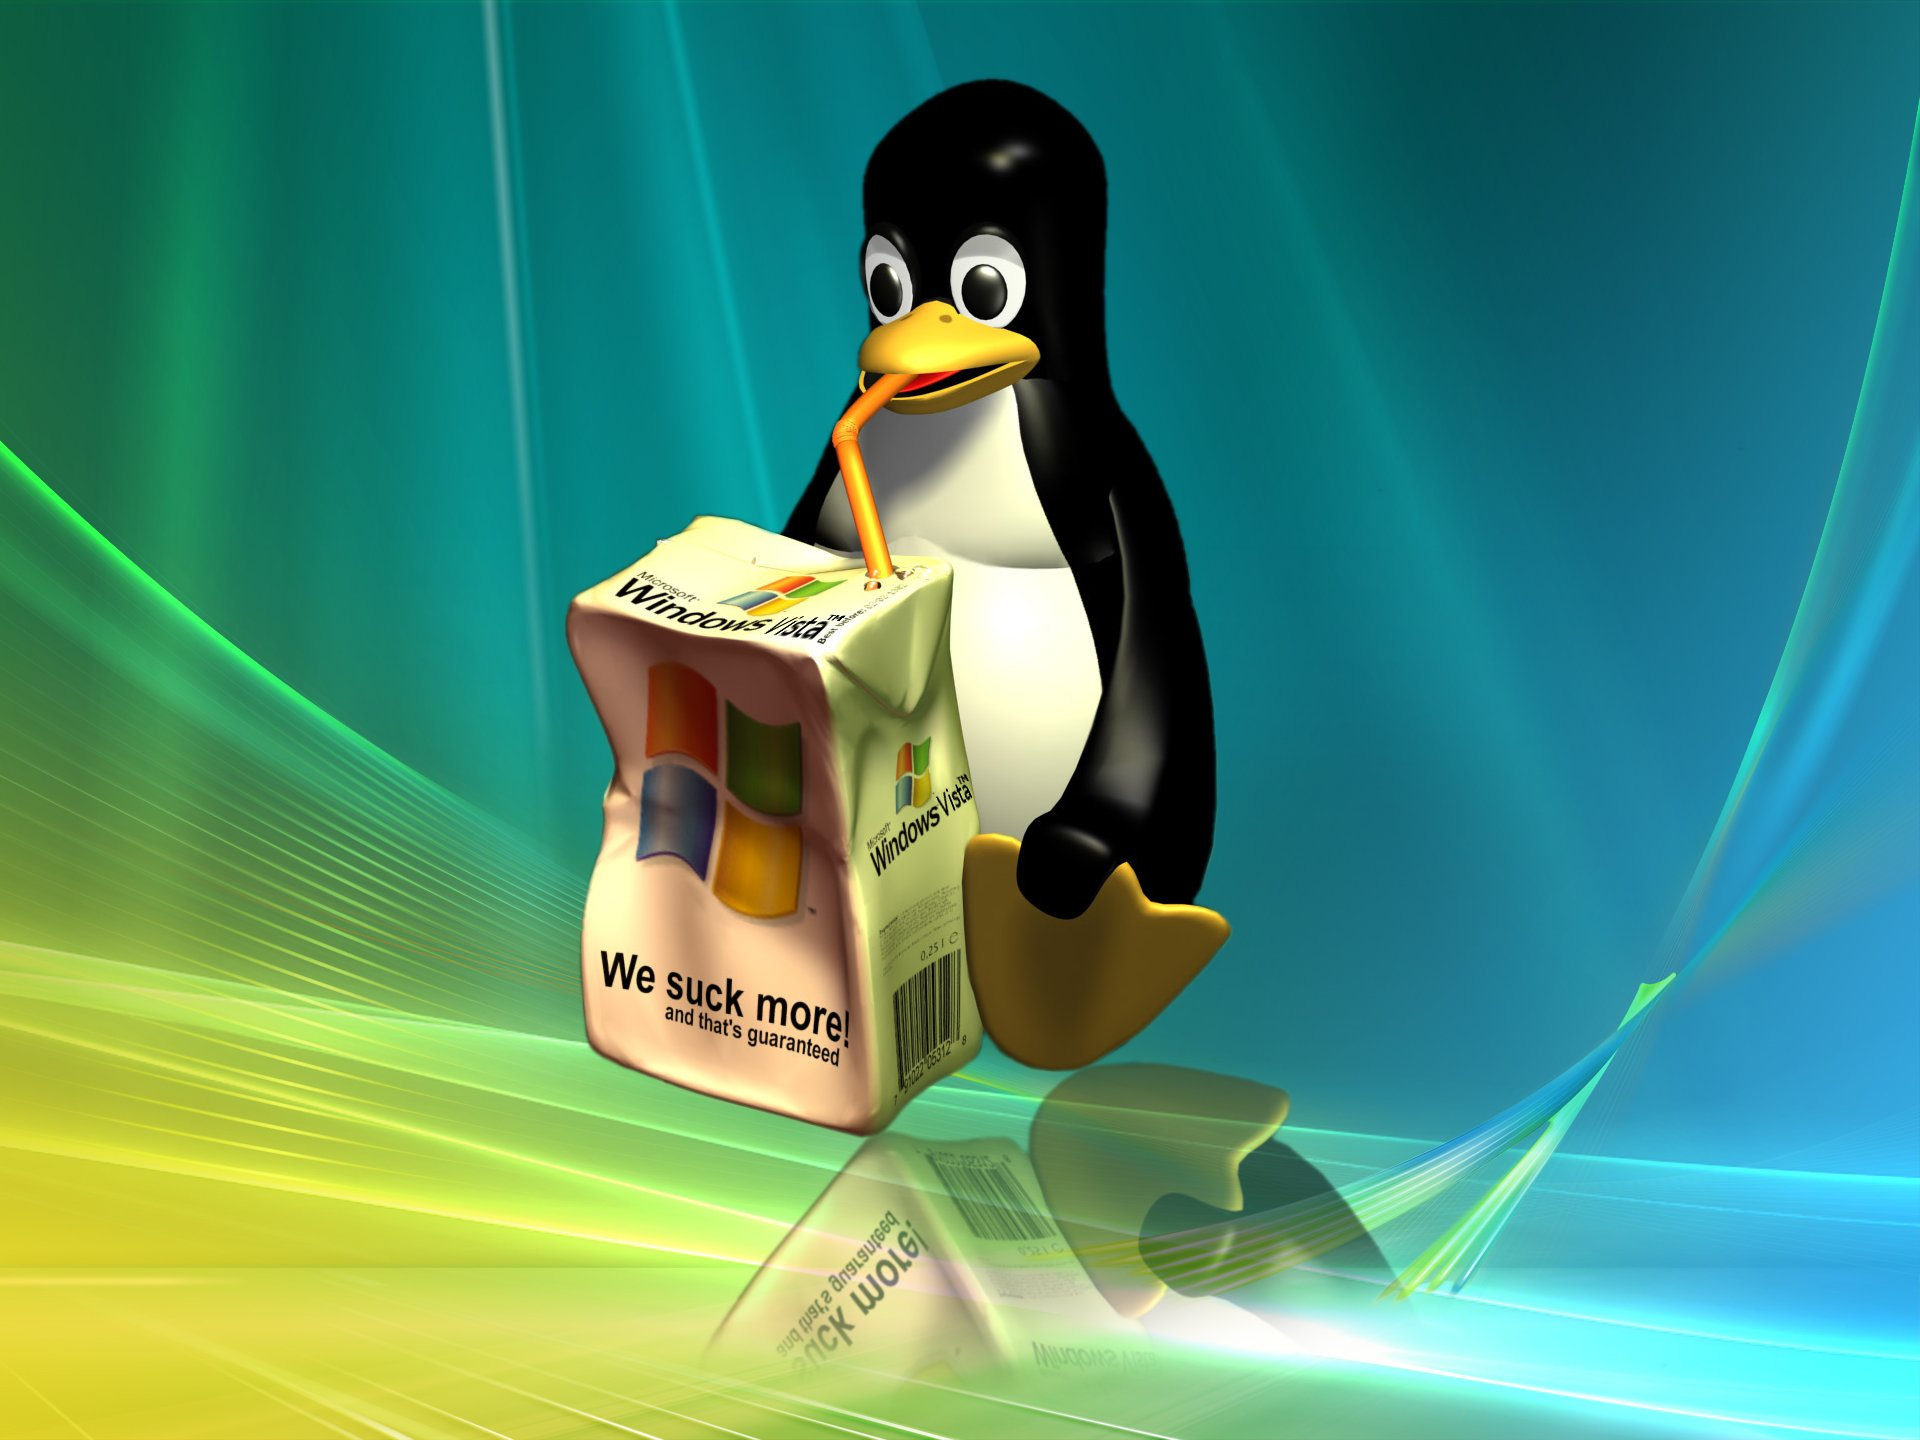 Download 45 Awesome Linux Wallpapers